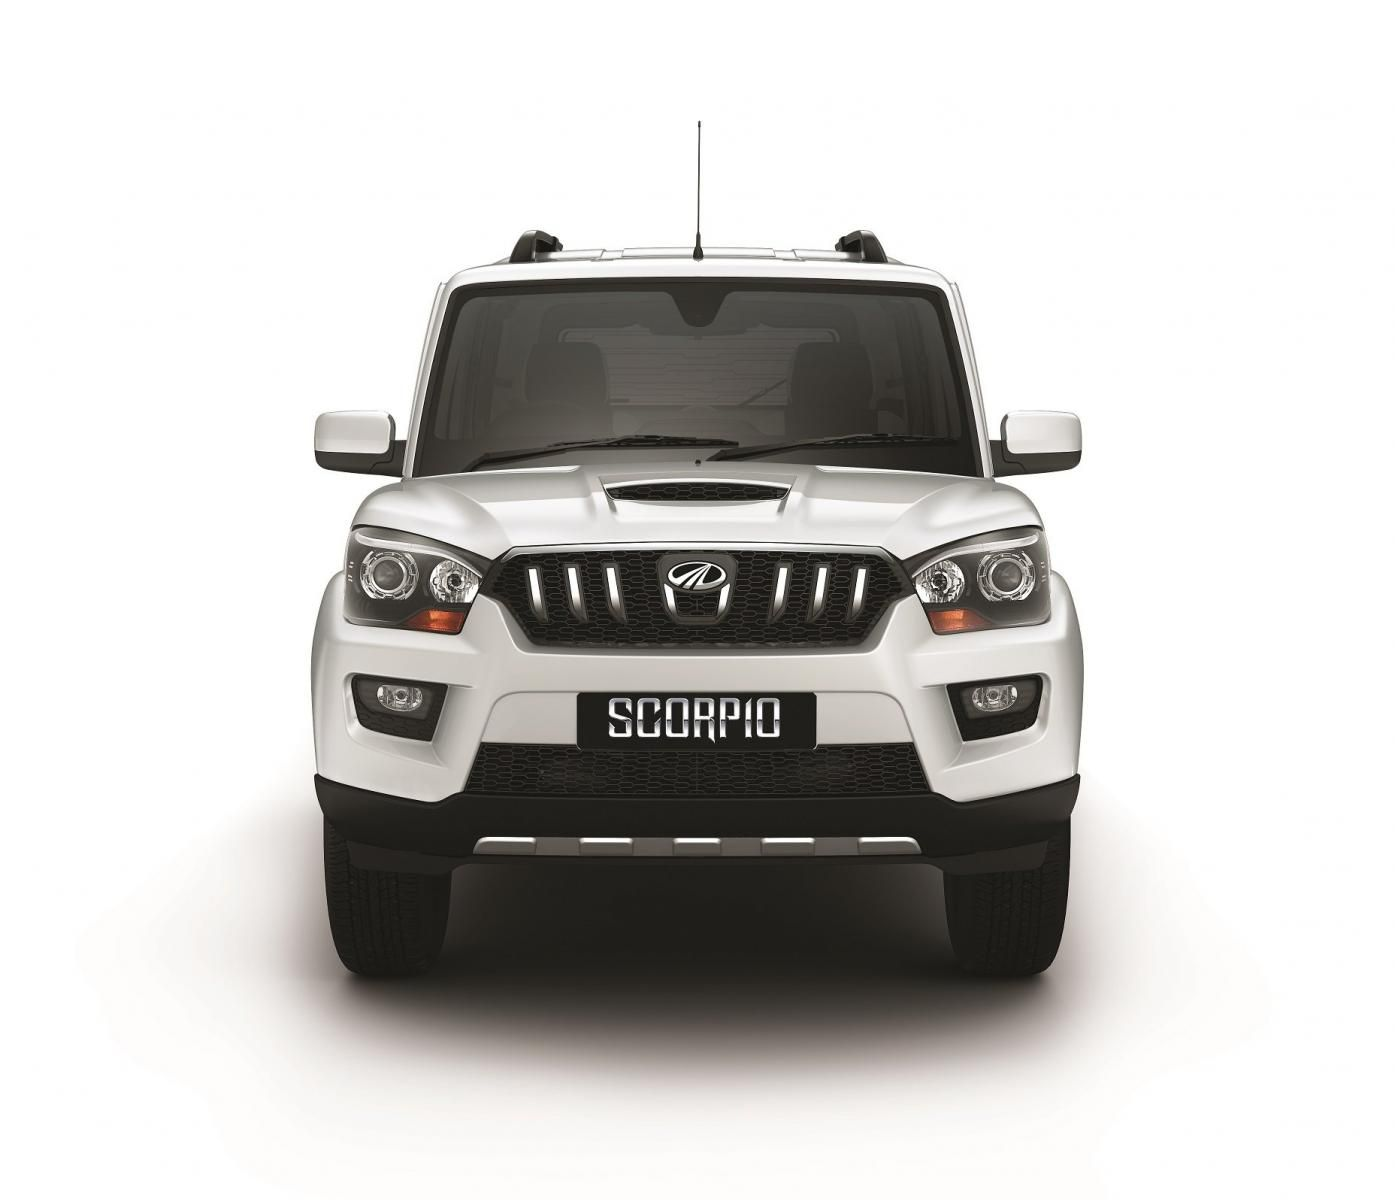 Mahindra Scorpio wallpapers, free download | Images Wallpapers in